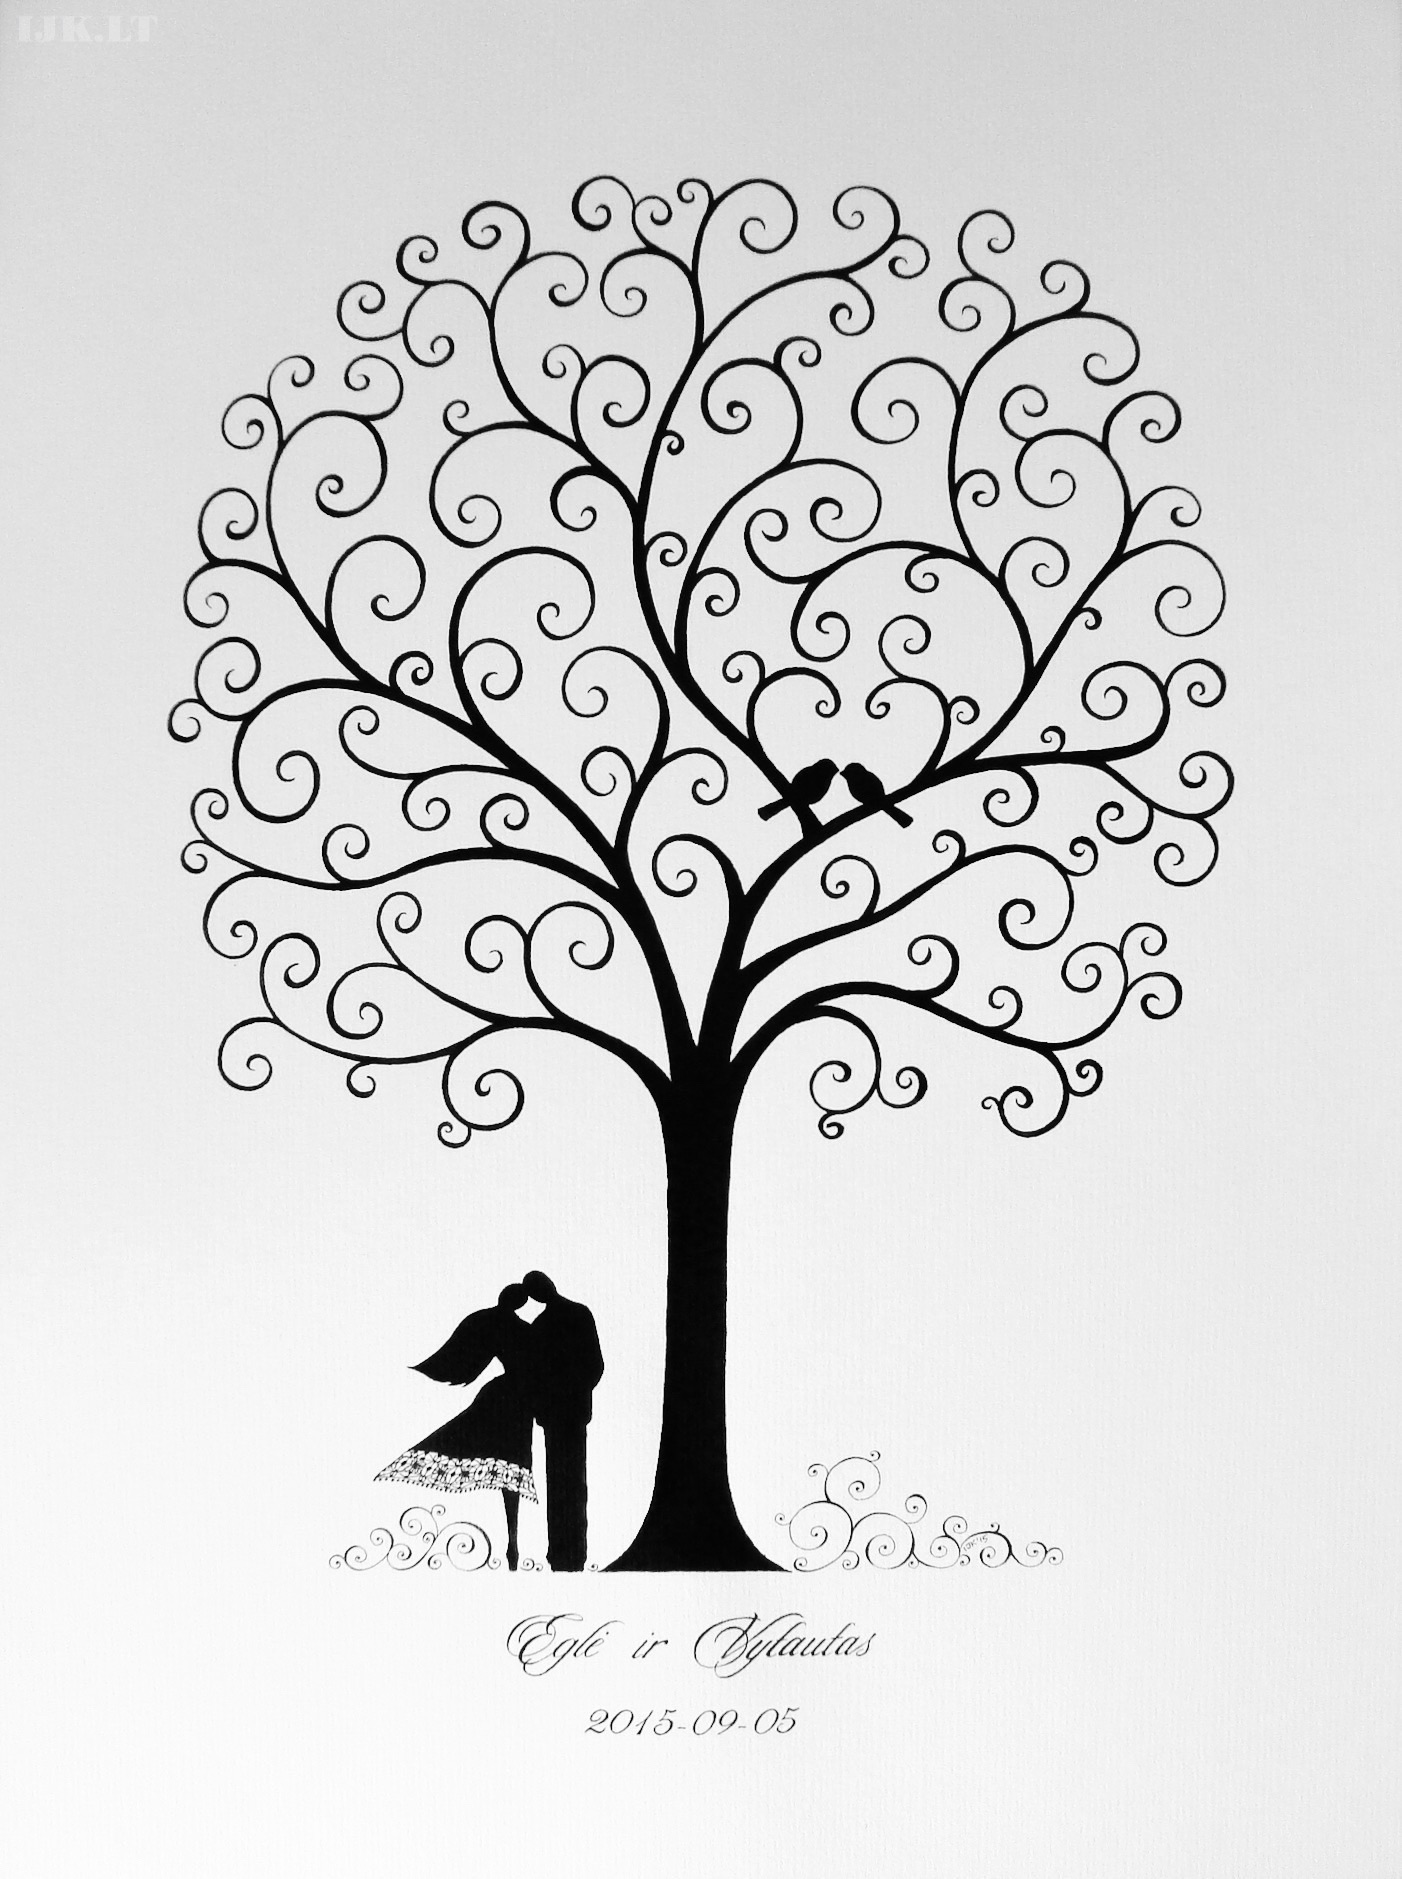 Picture for guests fingerprints and wishes, wedding tree, couple, lovers